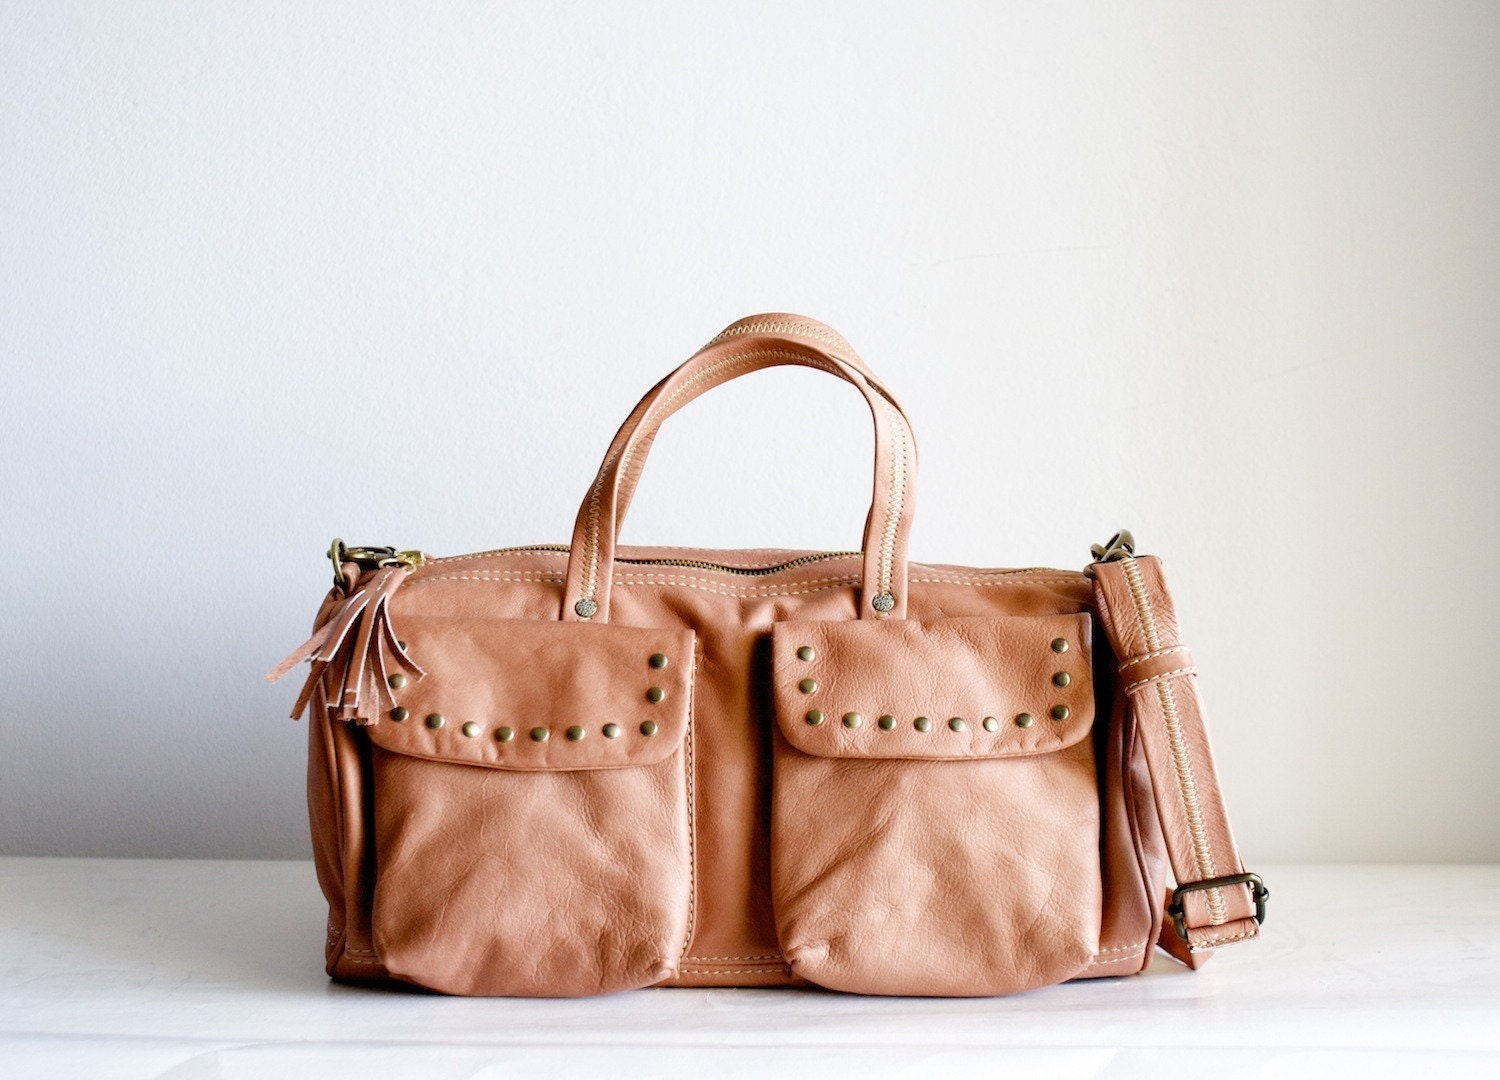 The Barrel Bag in Peach w/ studs